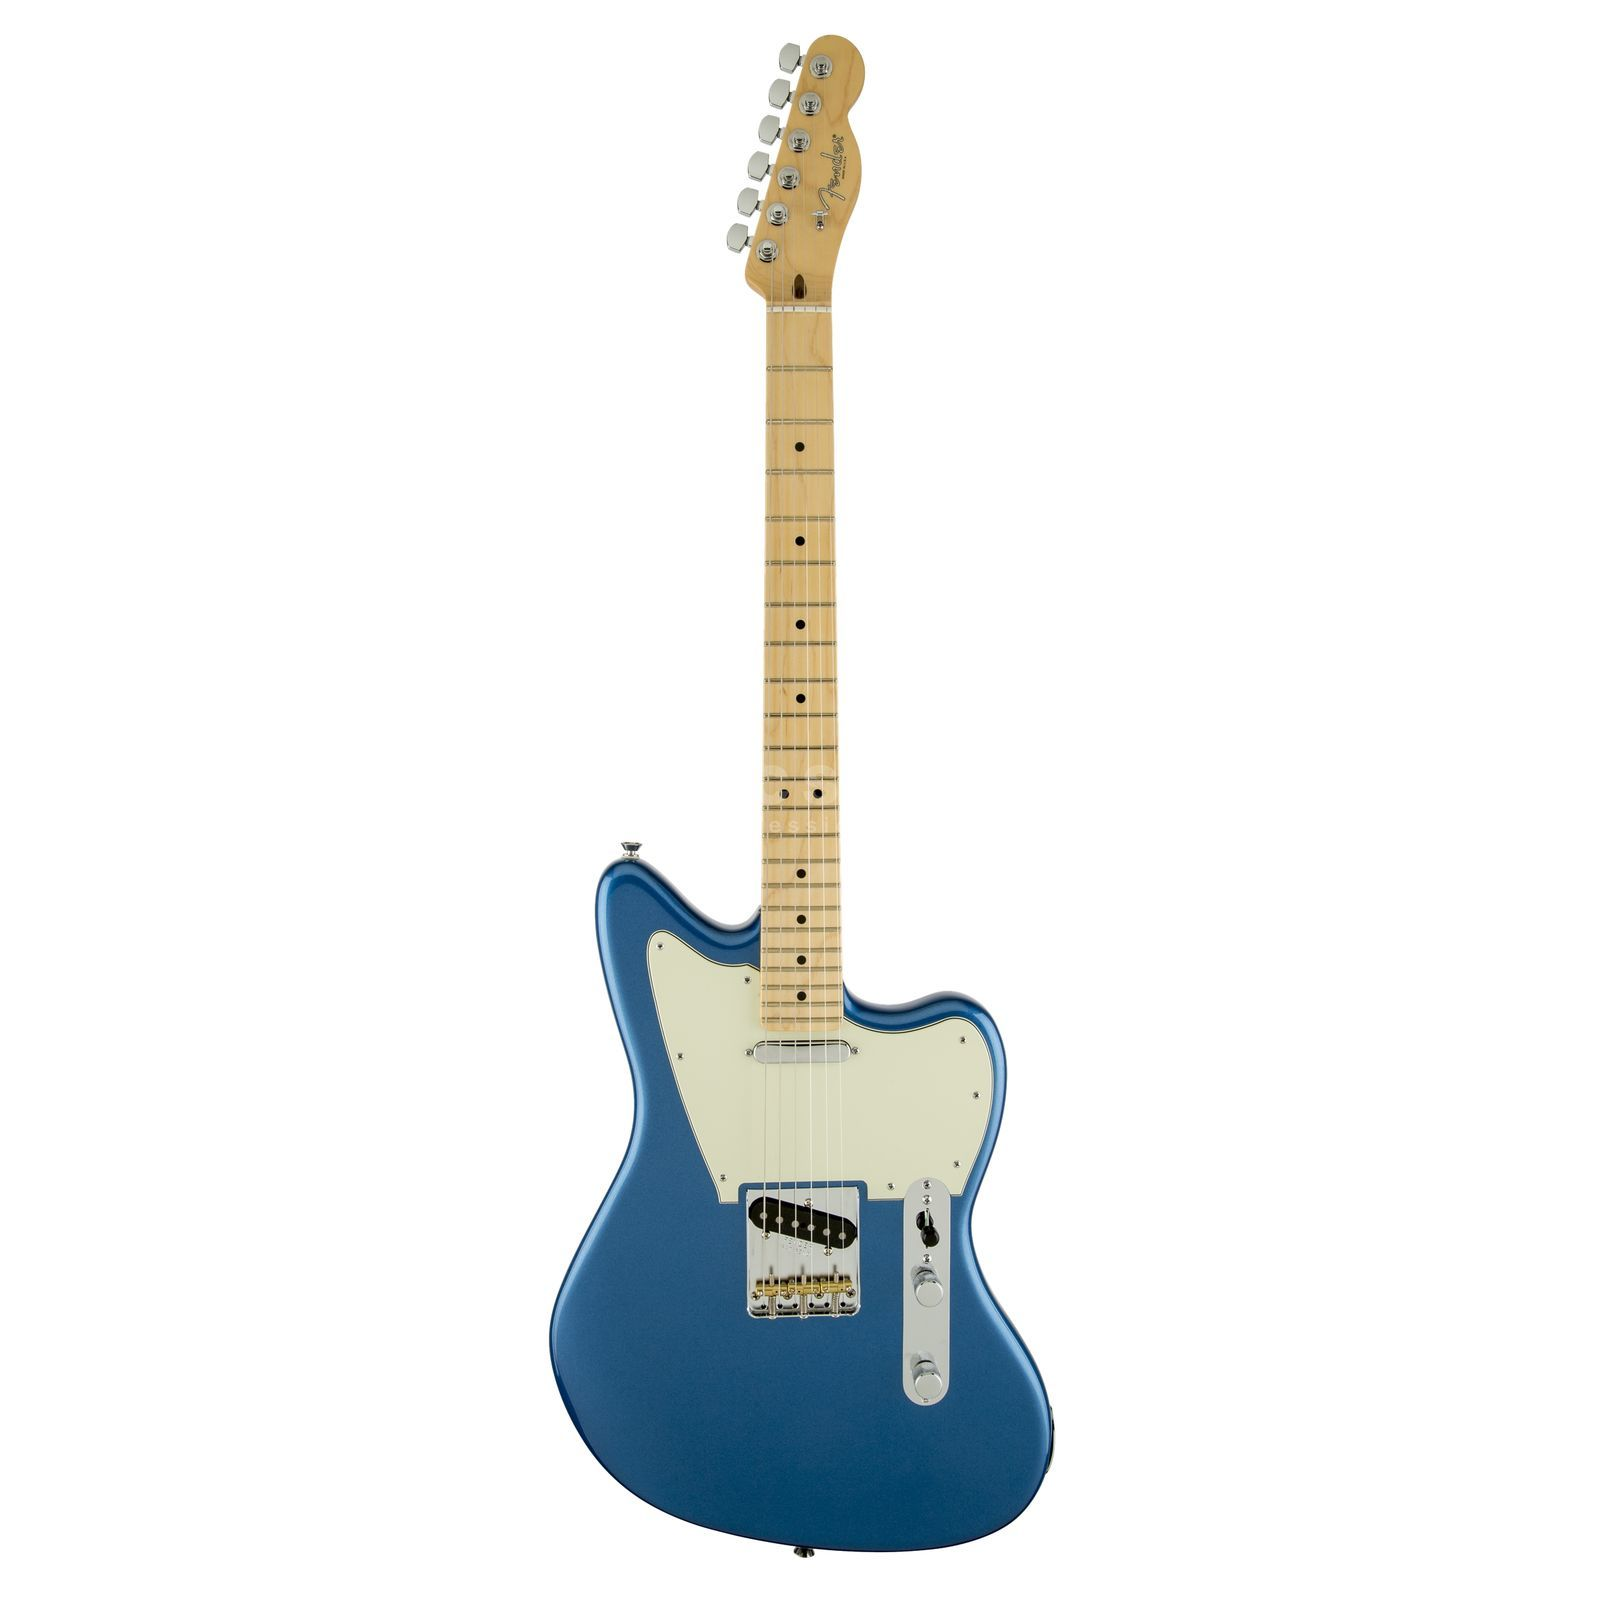 Fender Magnificent 7 Offset Tele MN Lake Placid Blue Produktbillede